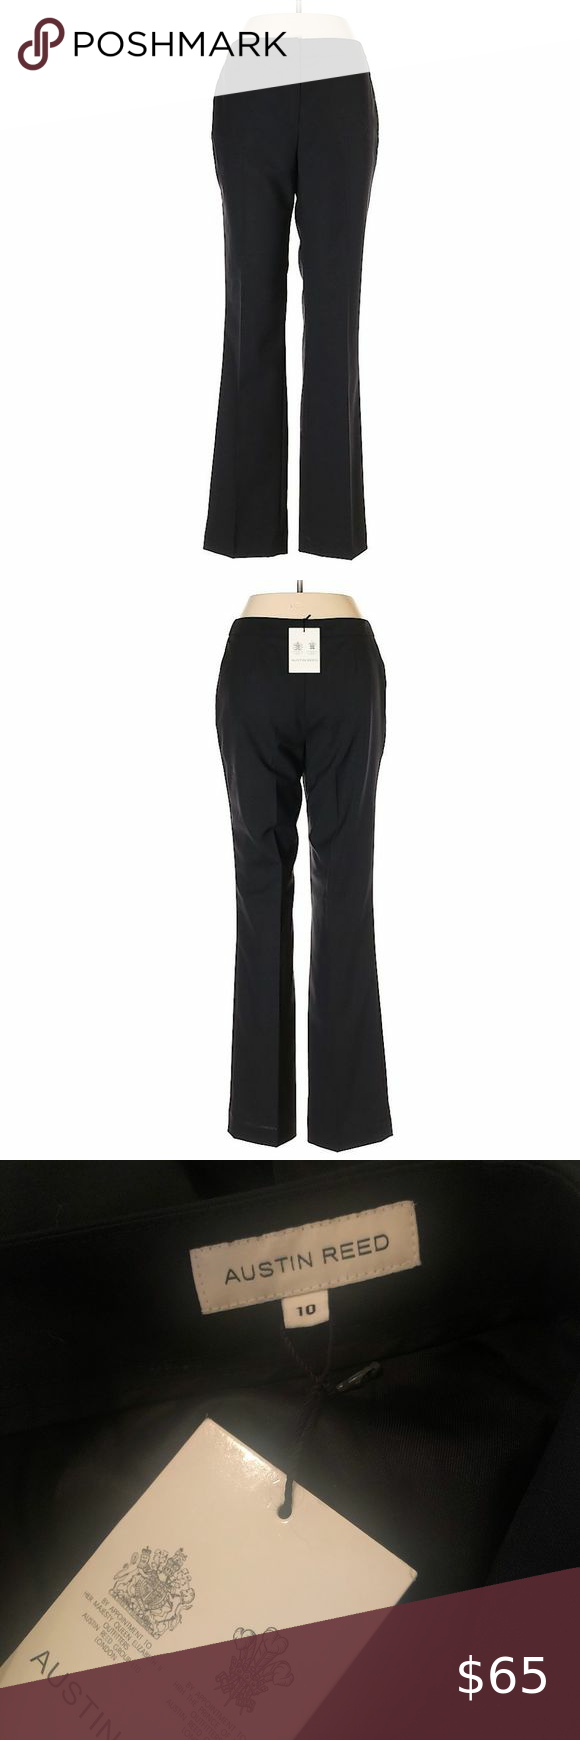 Austin Reed Black Wool Dress Trouser Austin Reed Black Wool Dress Trouser Nwt New With Tags These Are An Amazing Pair Of Dress Trousers Wool Dress Black Wool